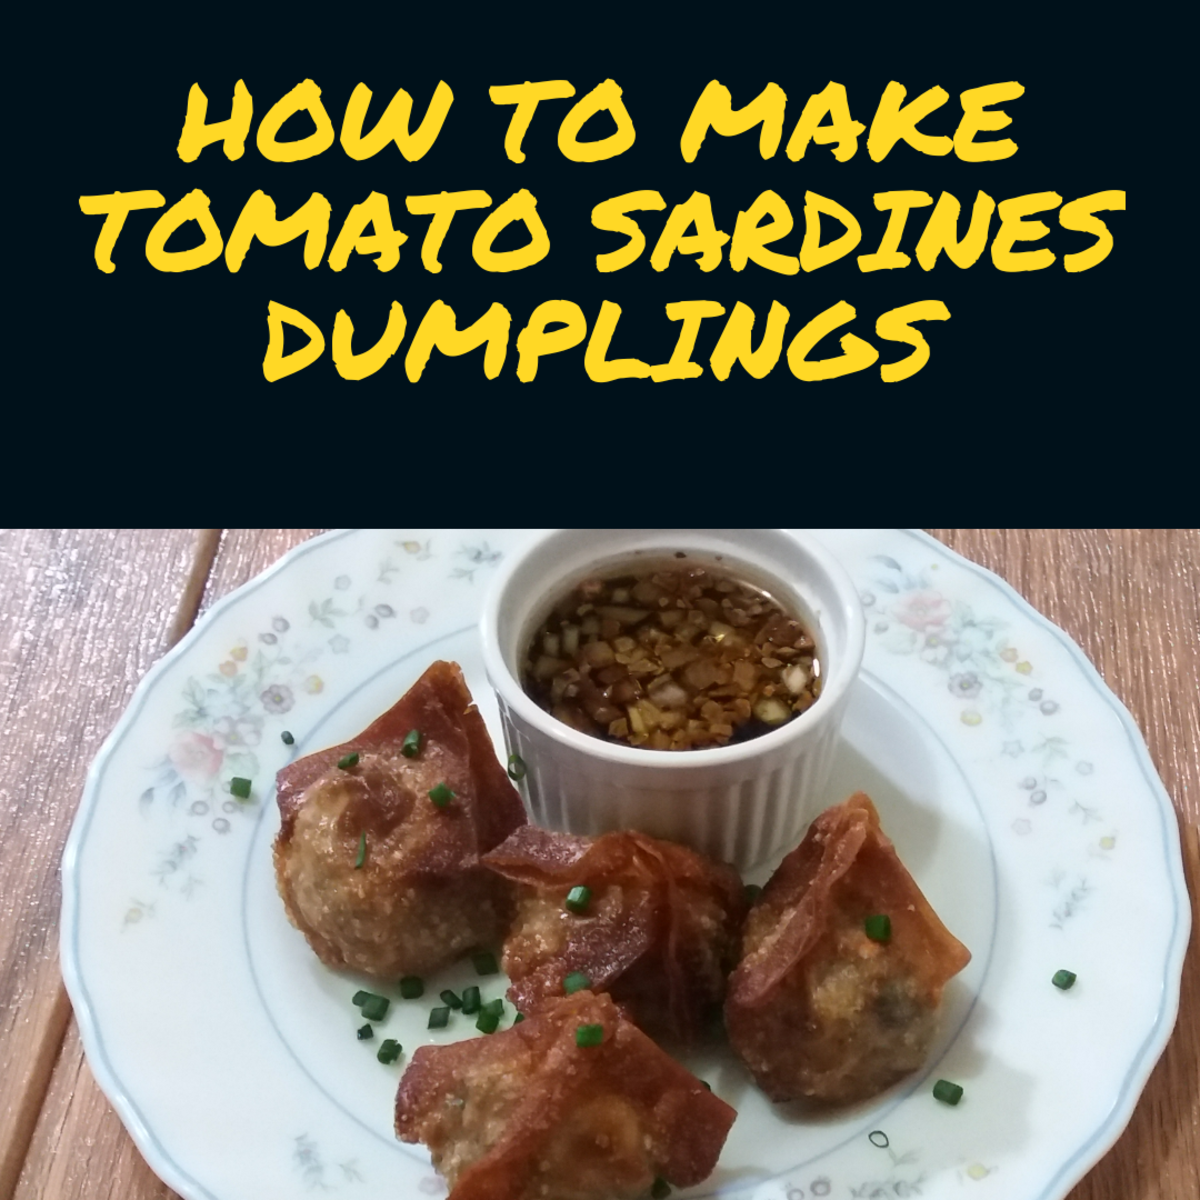 How to Make Dumplings With Sardines in Tomato Sauce